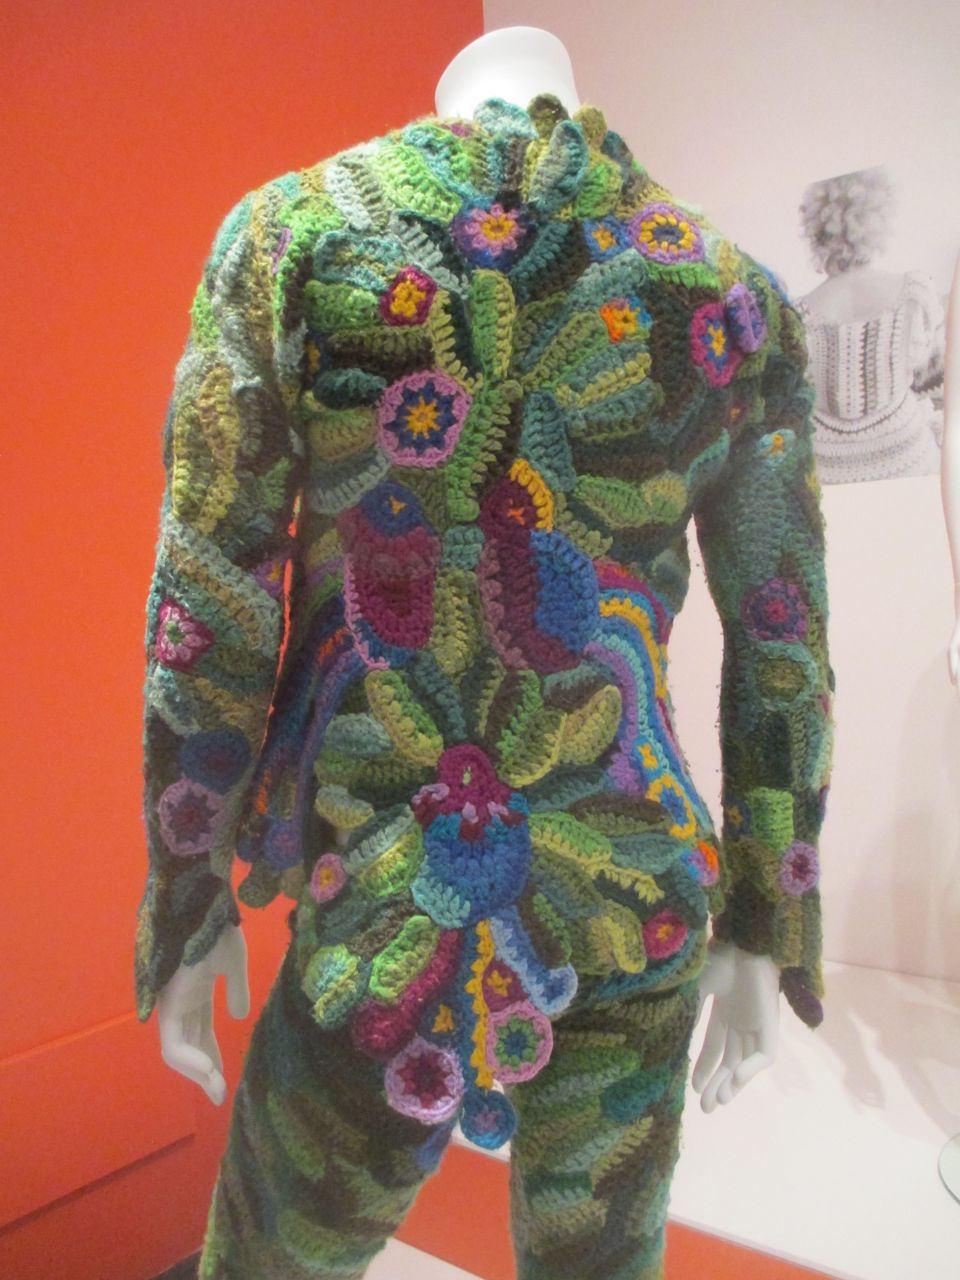 Counter Couture at Bellevue Arts Museum